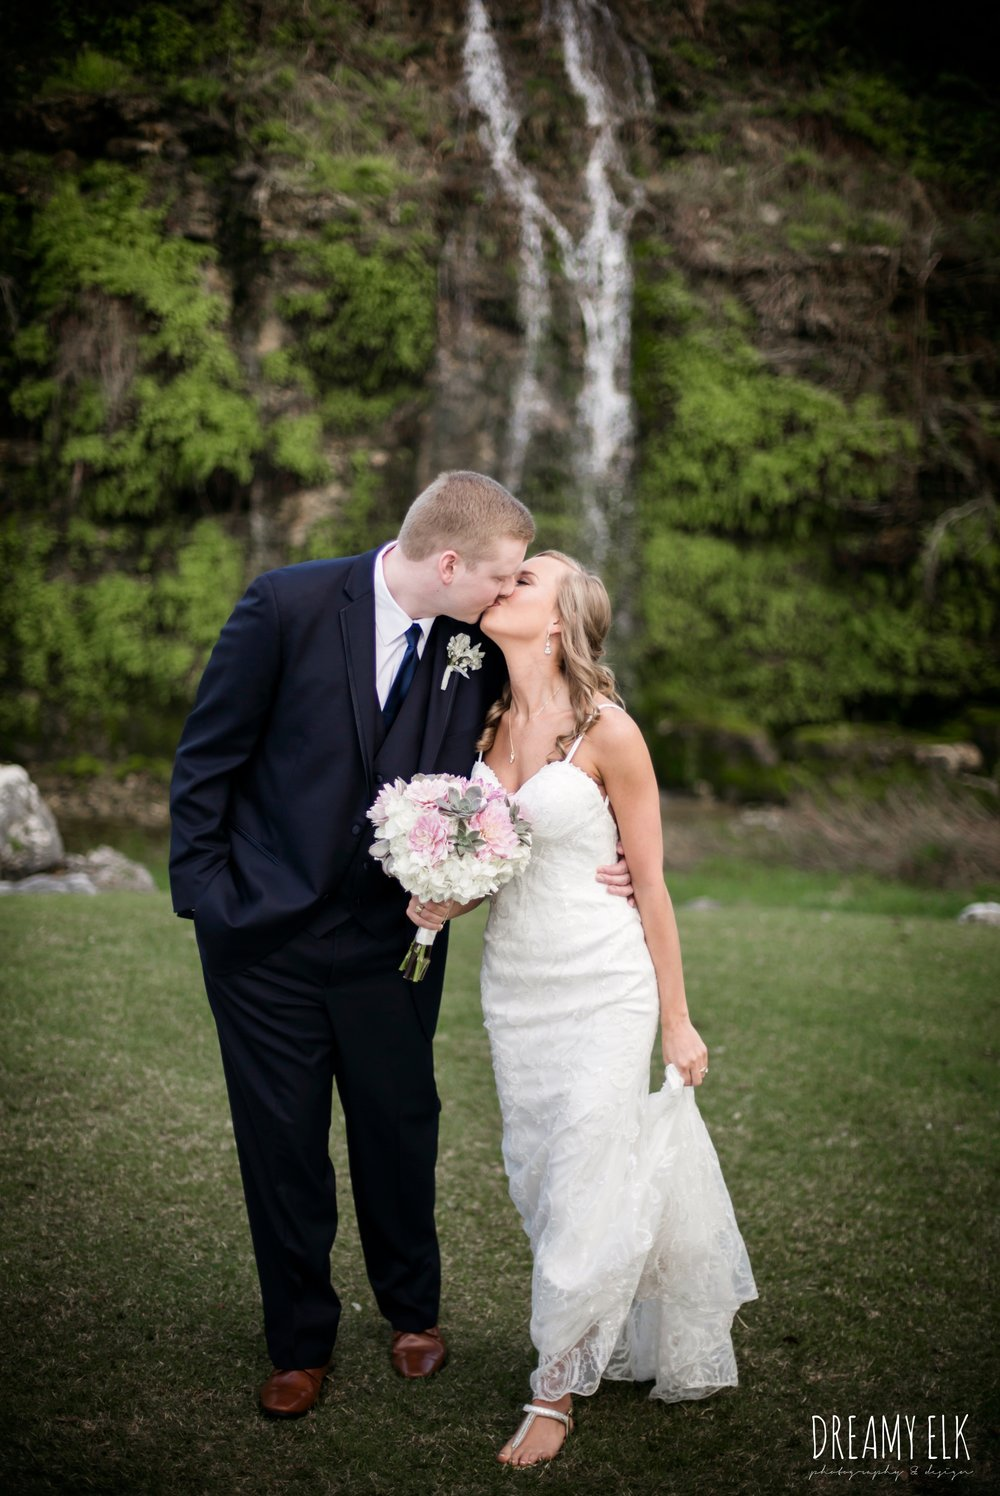 bride and groom, navy suit, backless column sheath wedding dress, heb blooms, cloudy march wedding photo, canyon springs golf club wedding, san antonio, texas {dreamy elk photography and design}